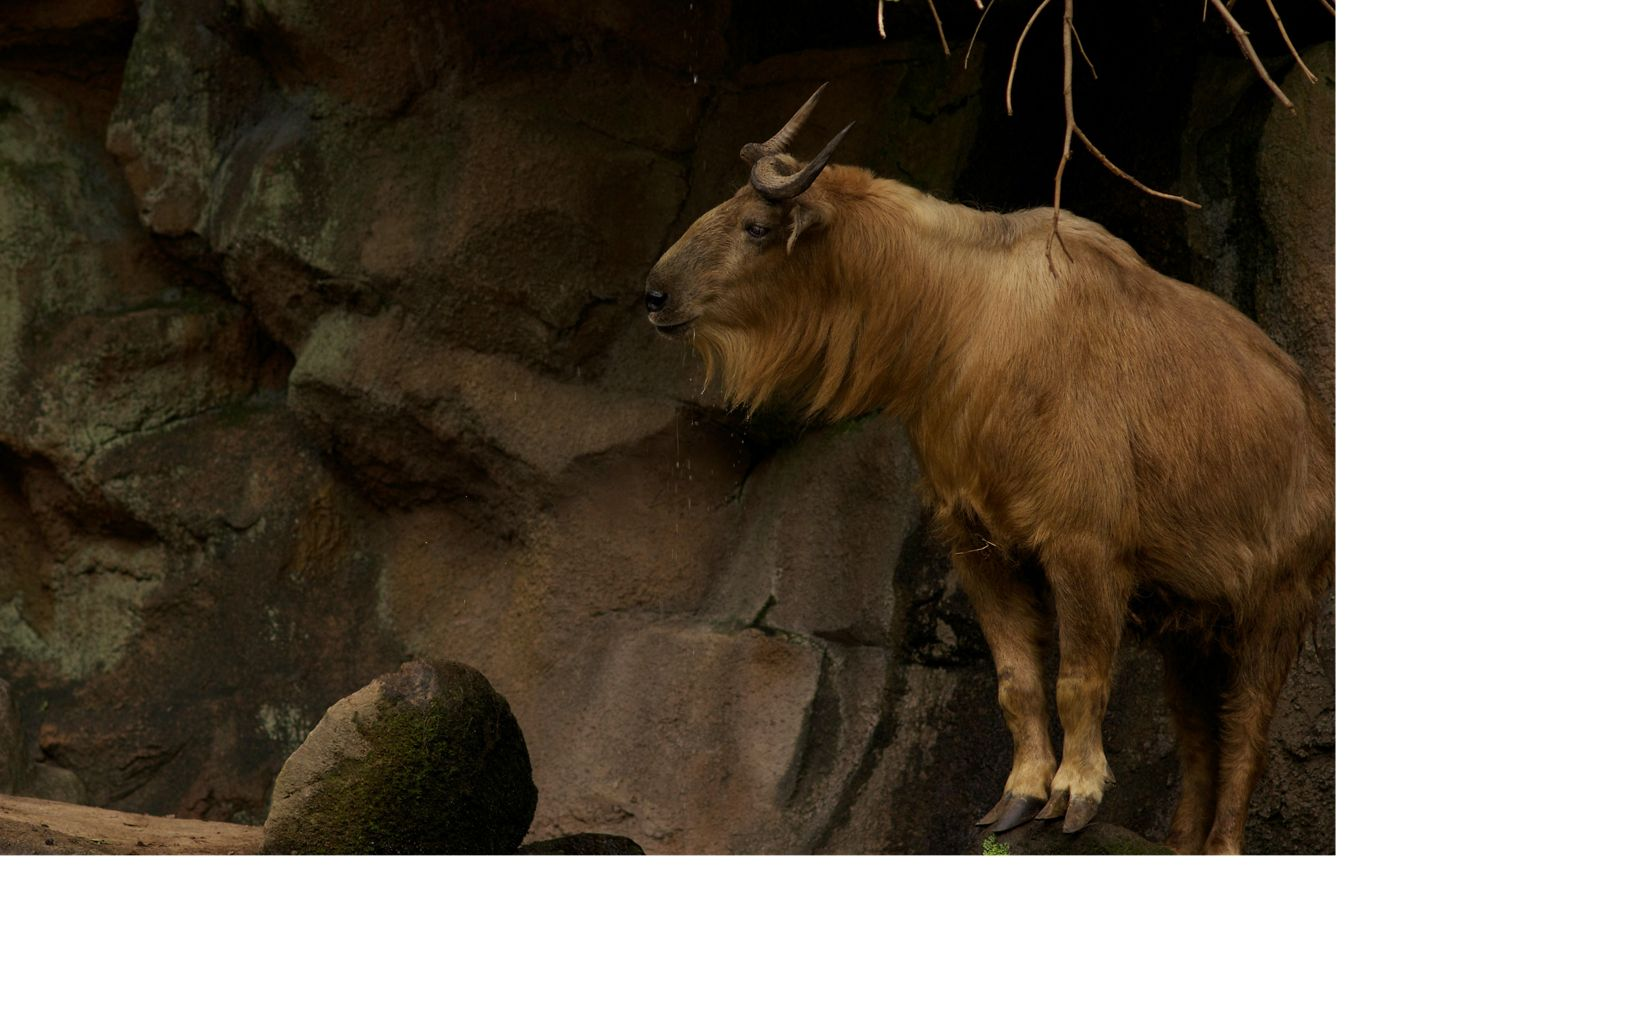 horned takin on a rocky outcrop